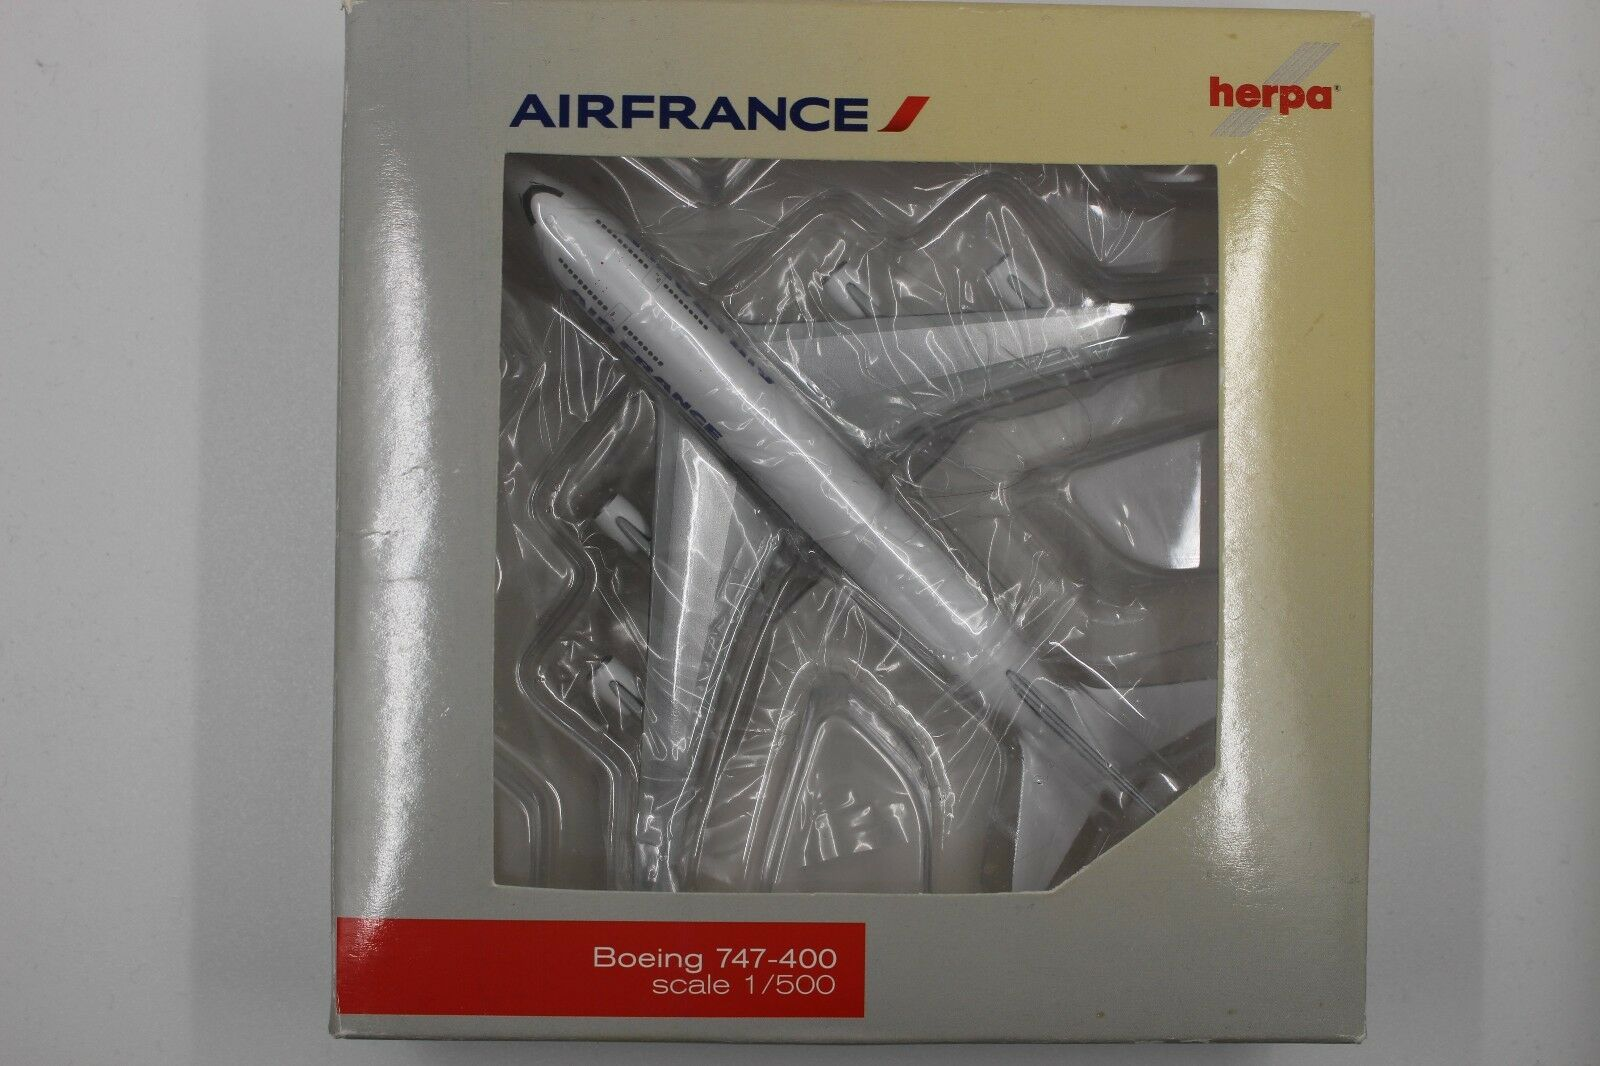 HERPA WINGS Club 1 500 Air France Boeing 747-400 (523844) Limited Edition